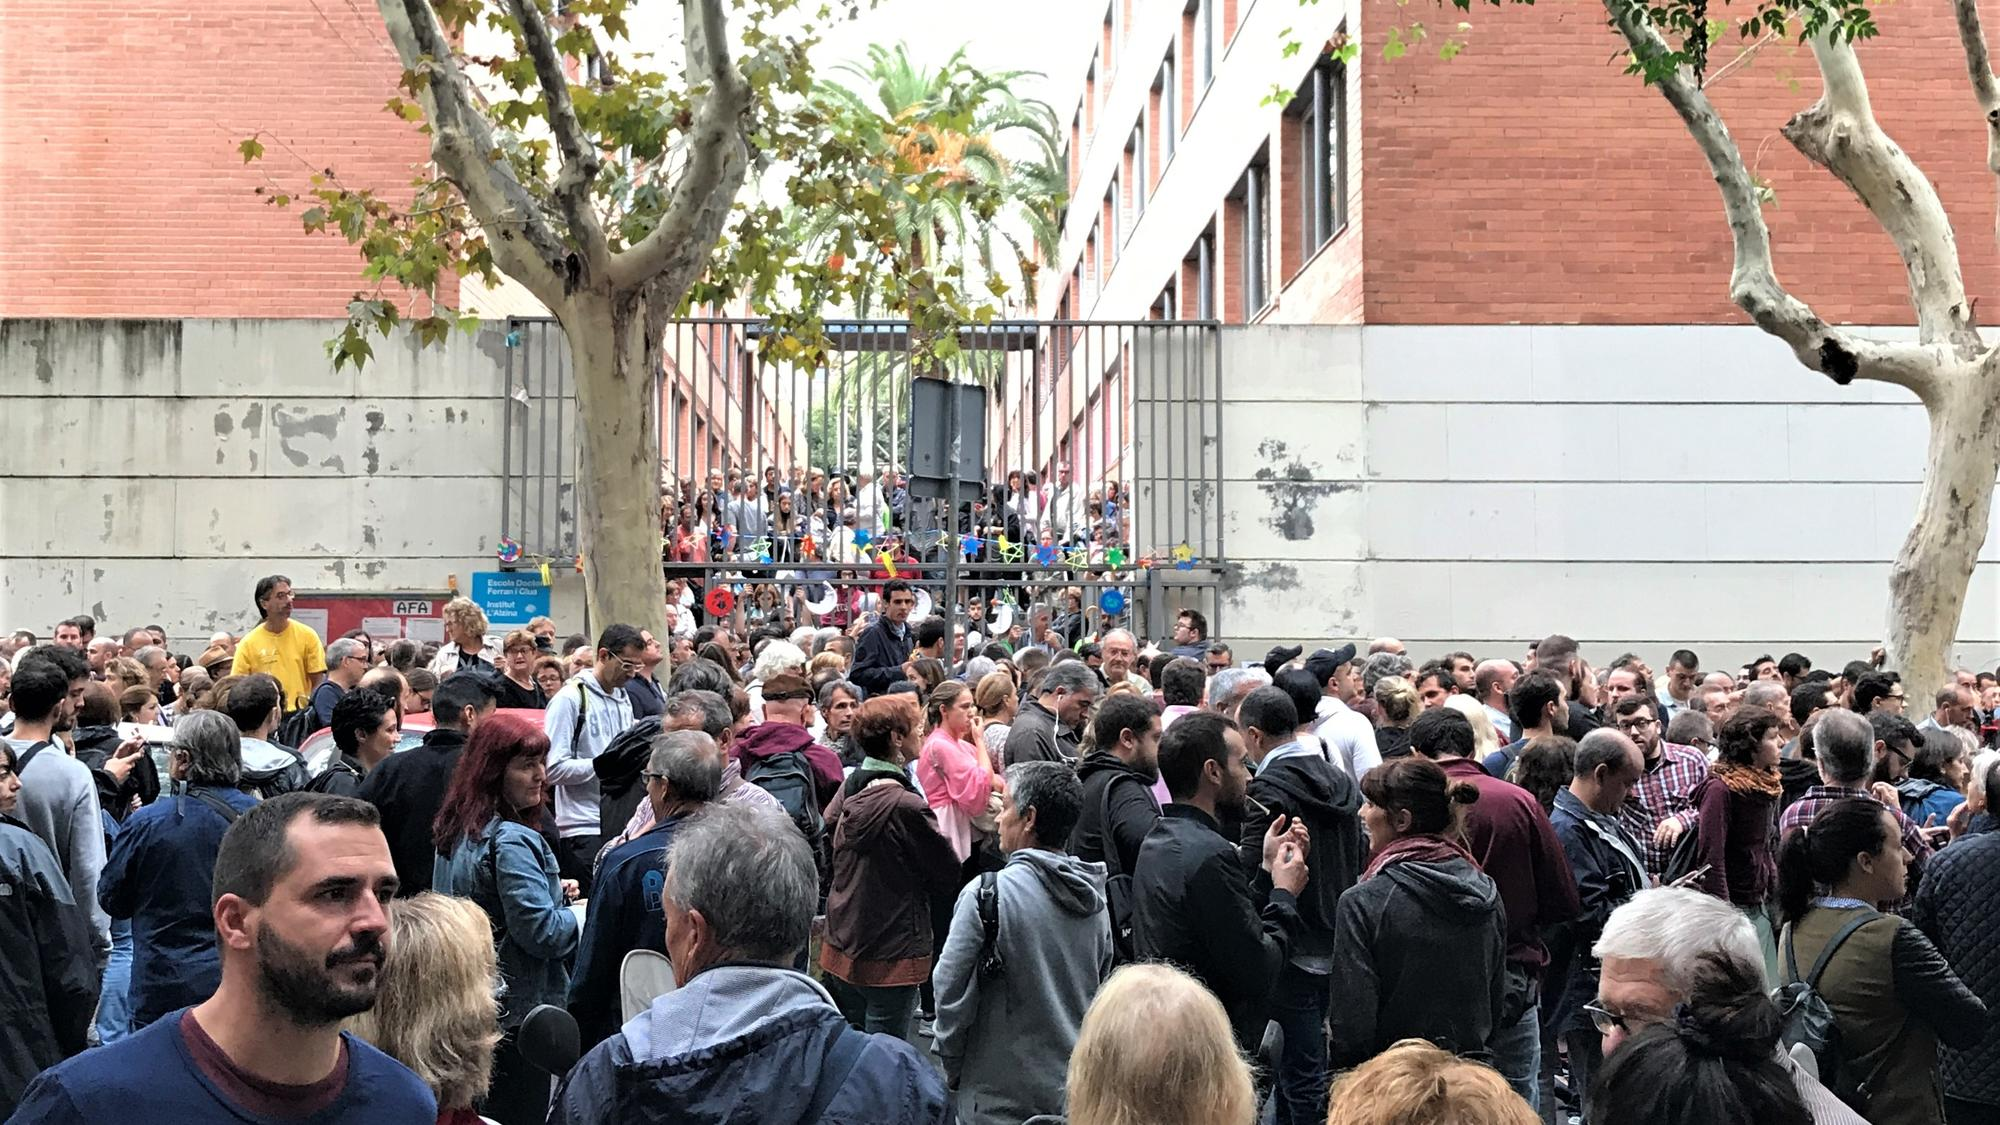 Crowds gather at a polling place during the 2017 Catalan referendum